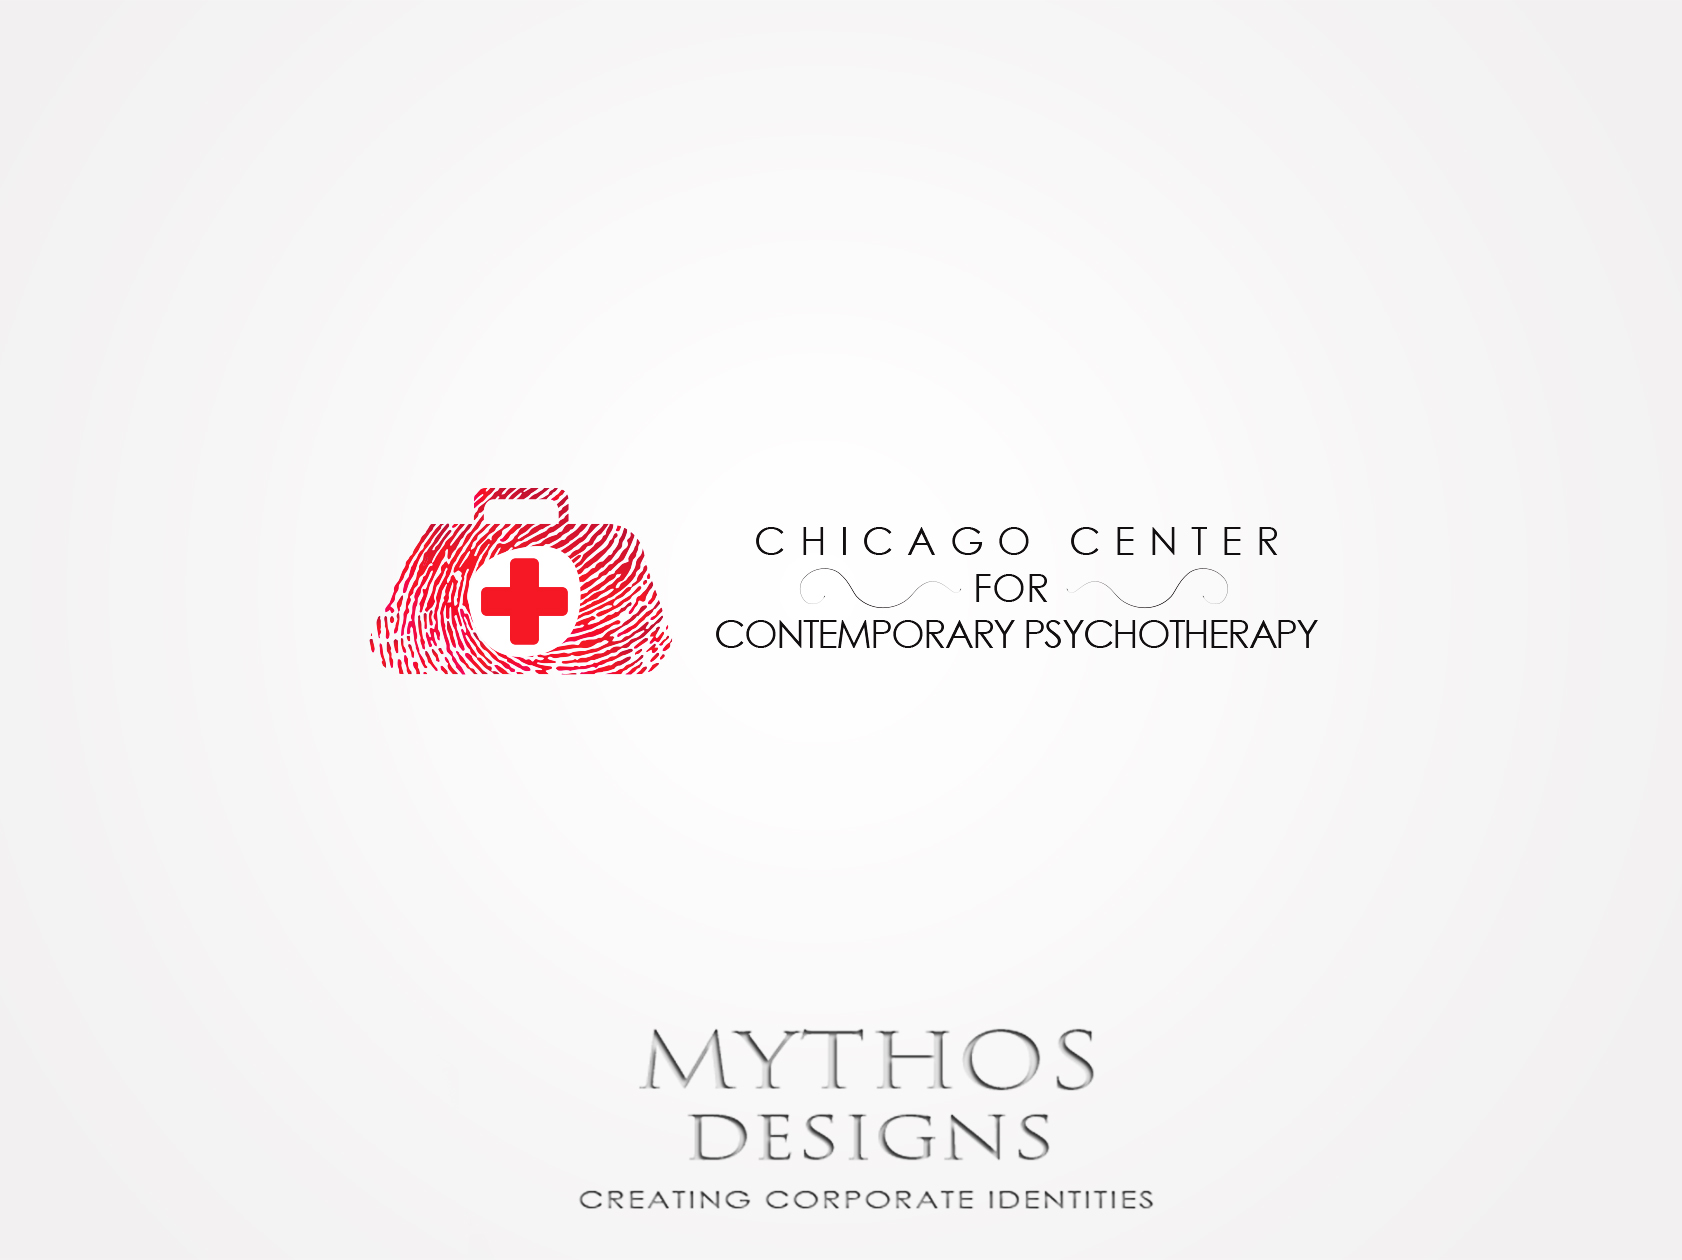 Logo Design by Mythos Designs - Entry No. 46 in the Logo Design Contest Inspiring Logo Design for Chicago Center for Contemporary Psychotherapy.